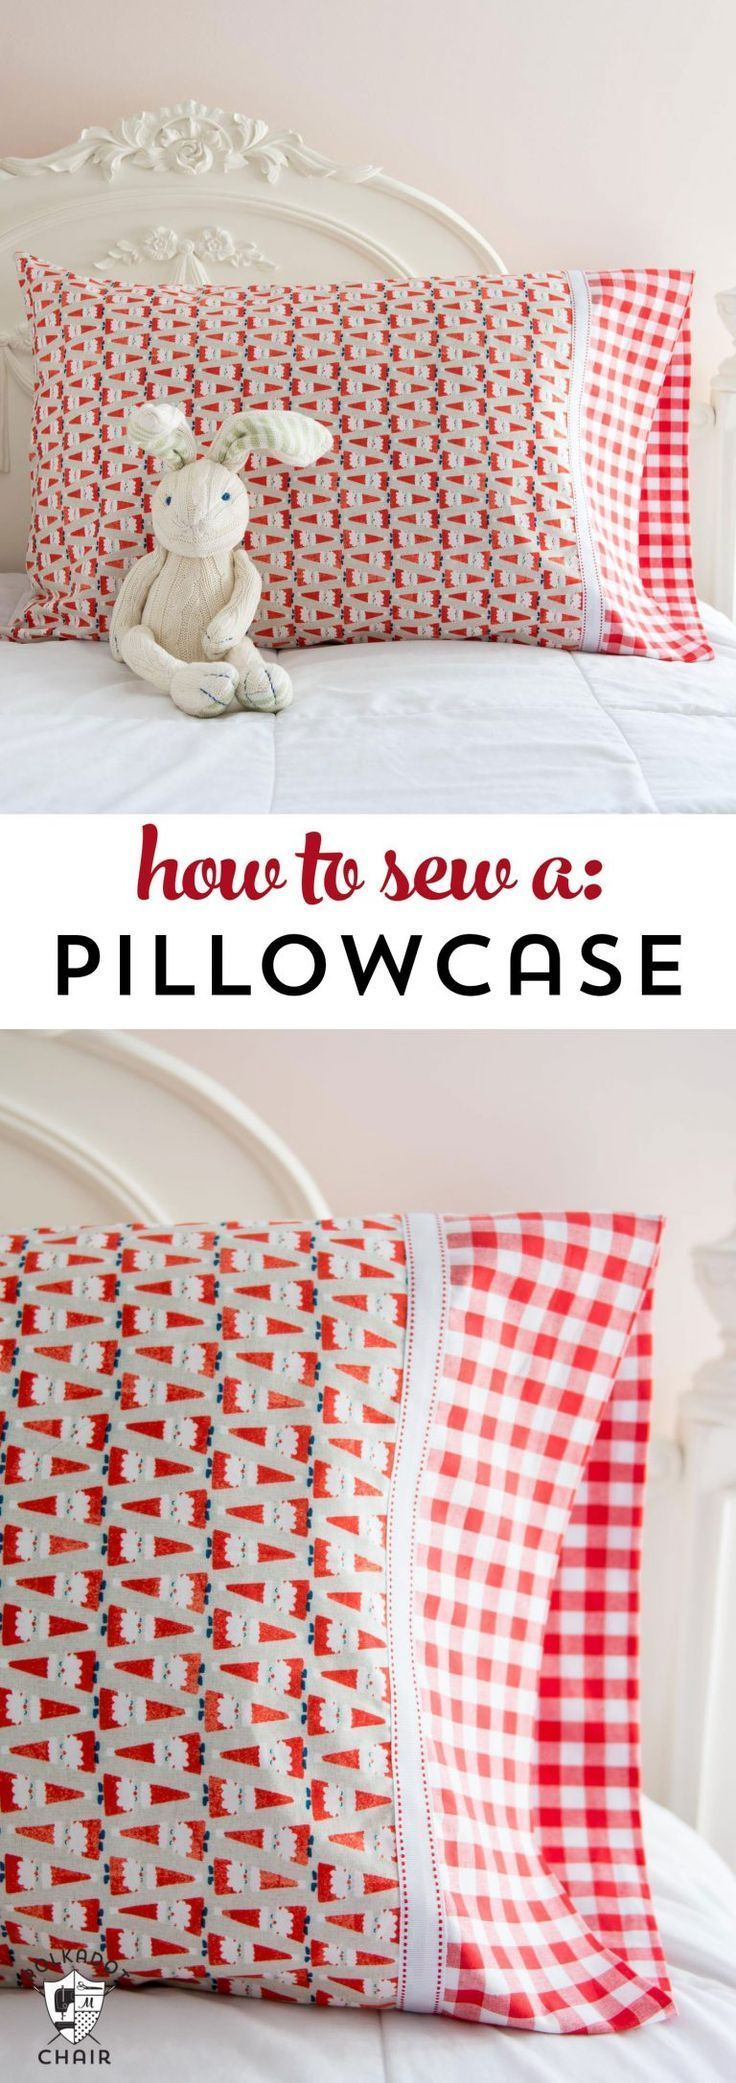 Learn a quick and easy way to sew a pillowcase. #sewing #beginnersewing #pillowc...